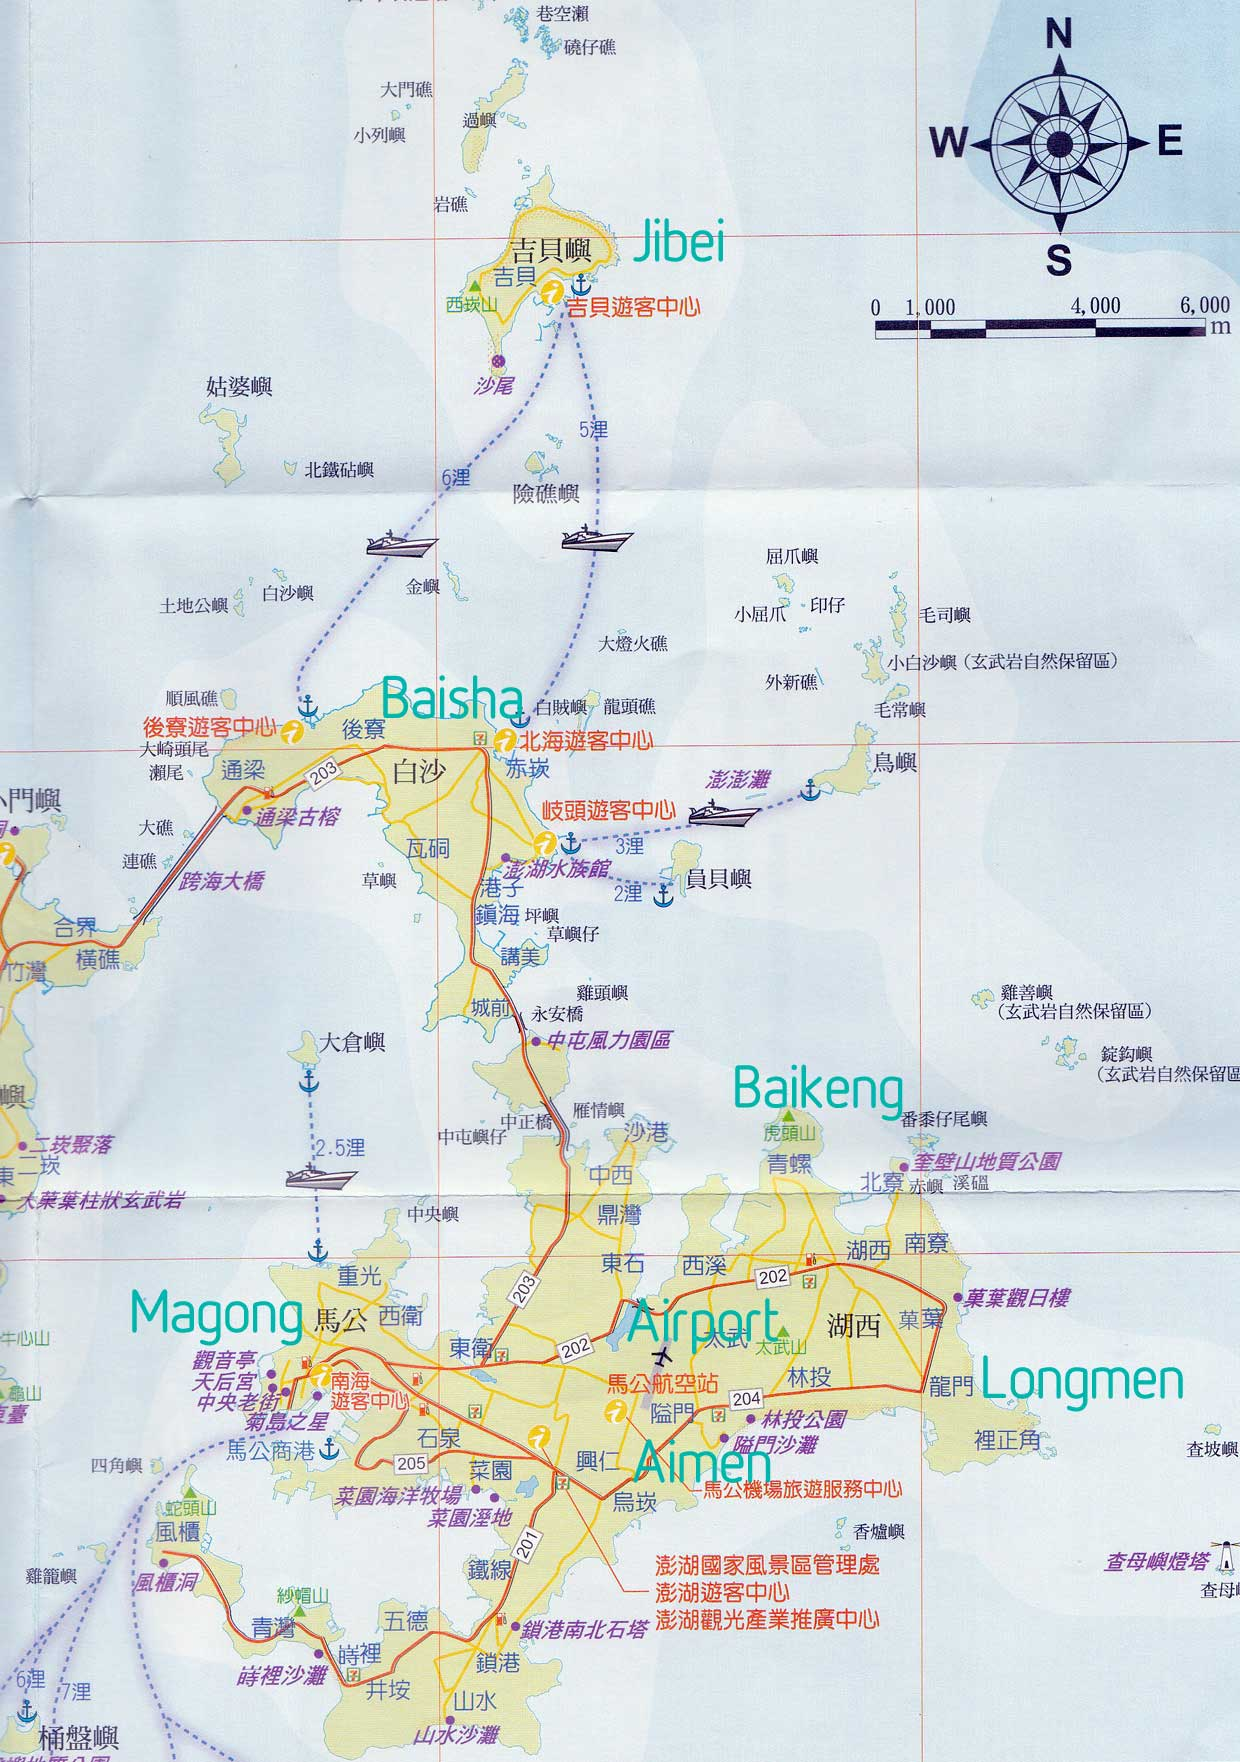 Detailed map of Penghu with main points of interest